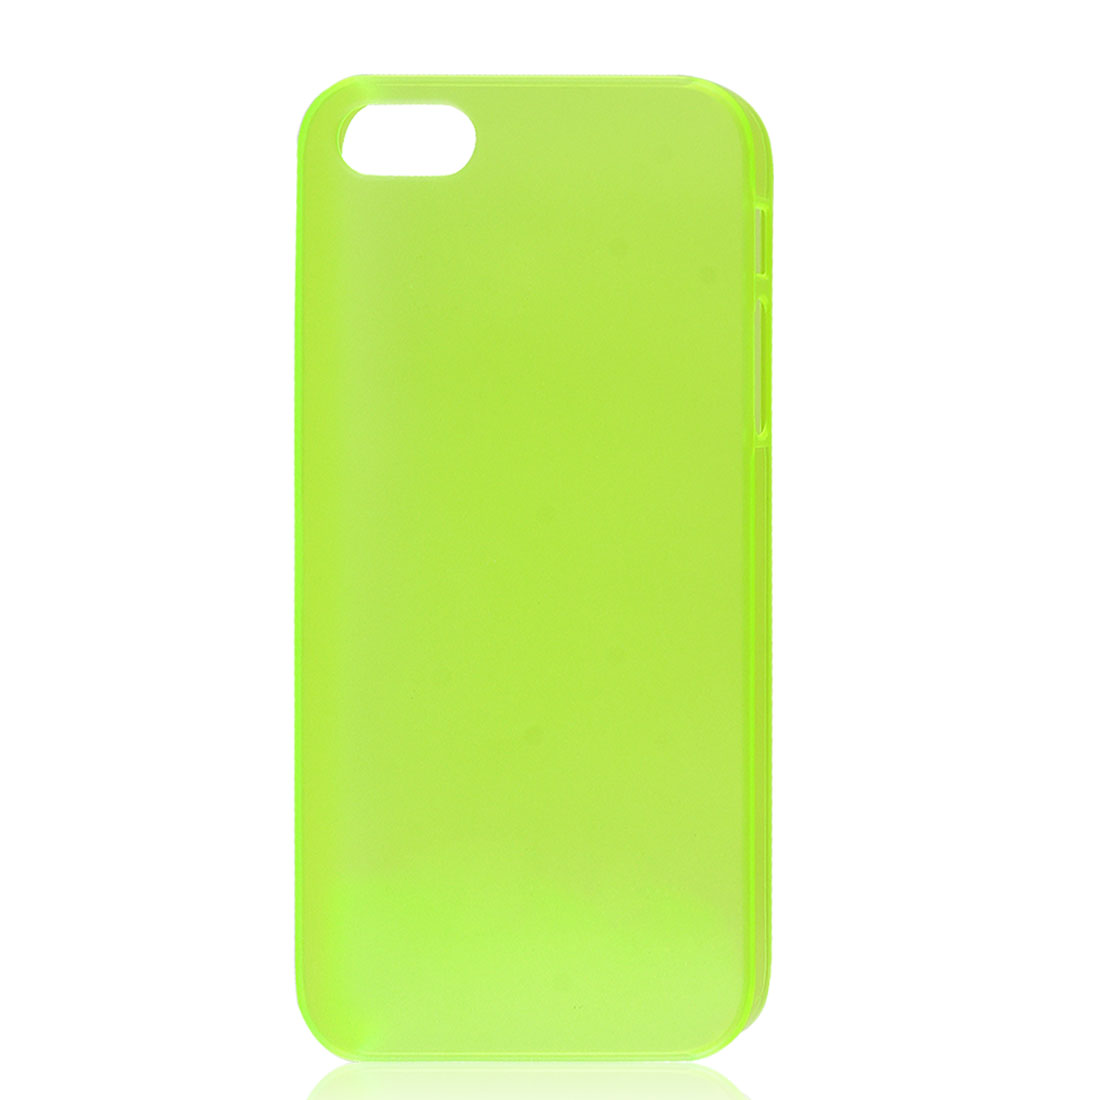 Slim Yellowgreen Plastic Back Case Skin Cover for iPhone 5 5G